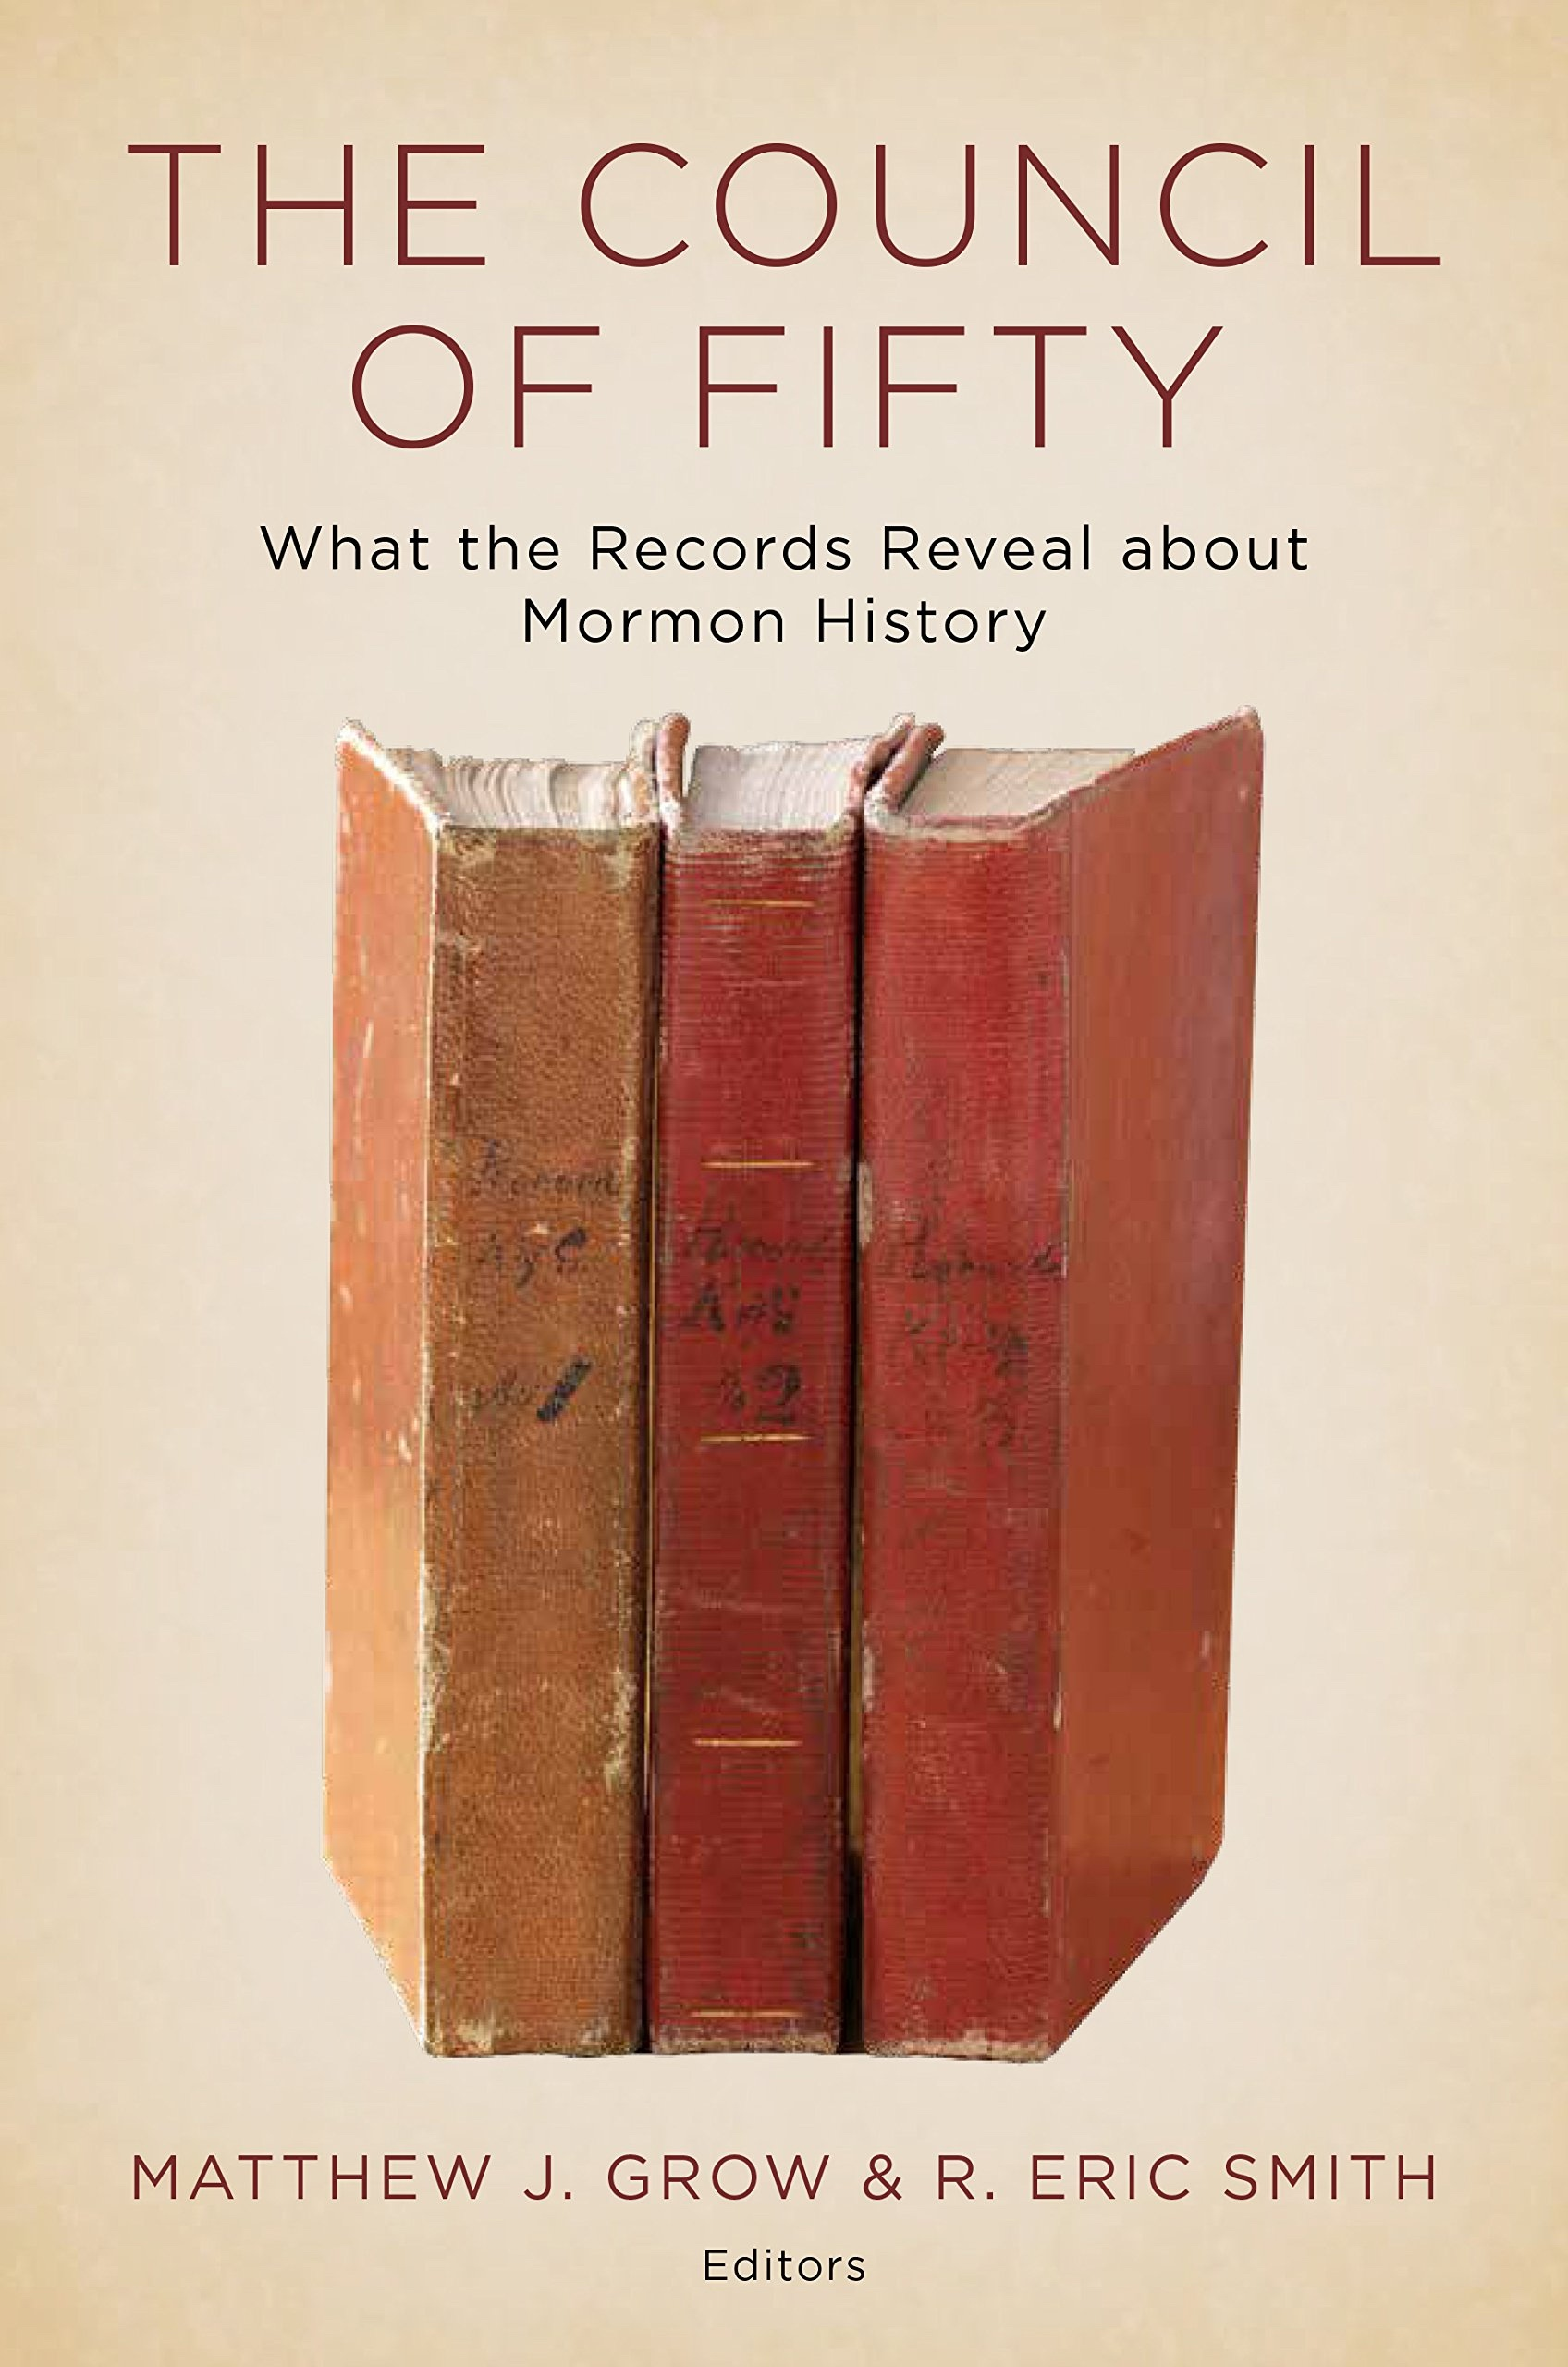 The Council of Fifty  What the Records Reveal about Mormon History, Grow, Matthew J. & R. Eric Smith